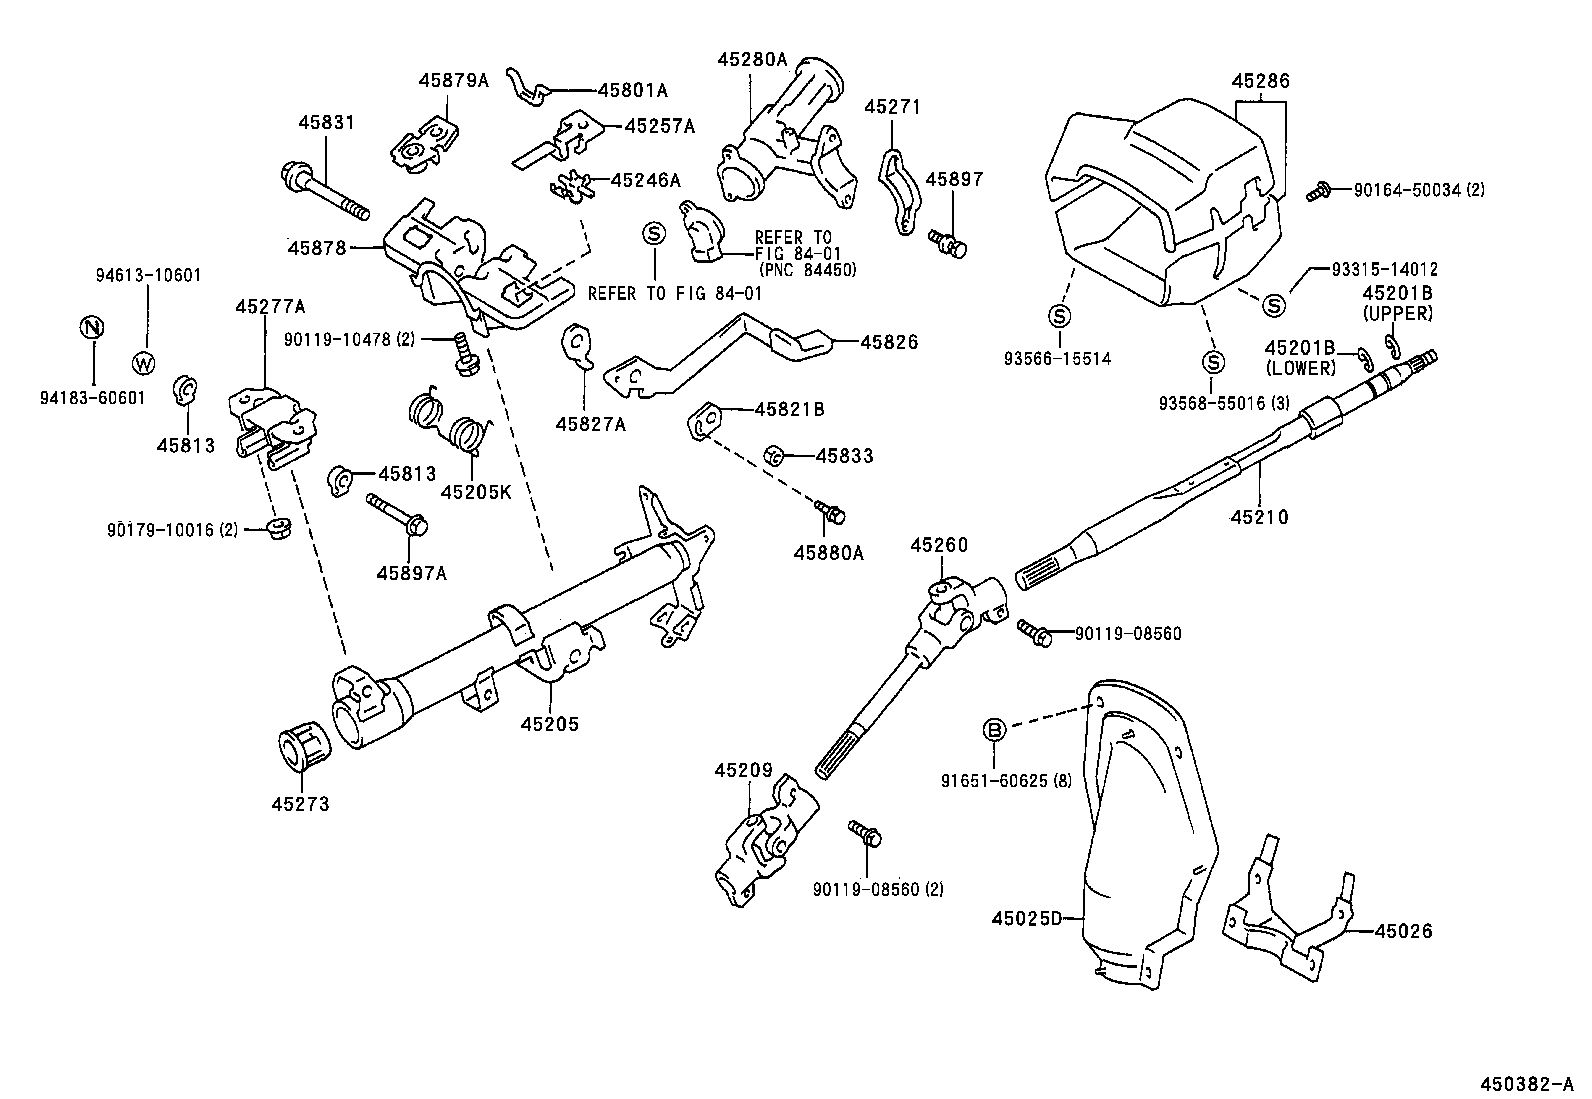 Steering Shaft Diagram Wiring Will Be A Thing Schematic Toyota Corollaae110r Aepek Powertrain Chassis Cj7 Column 1991 Chevy Silverado